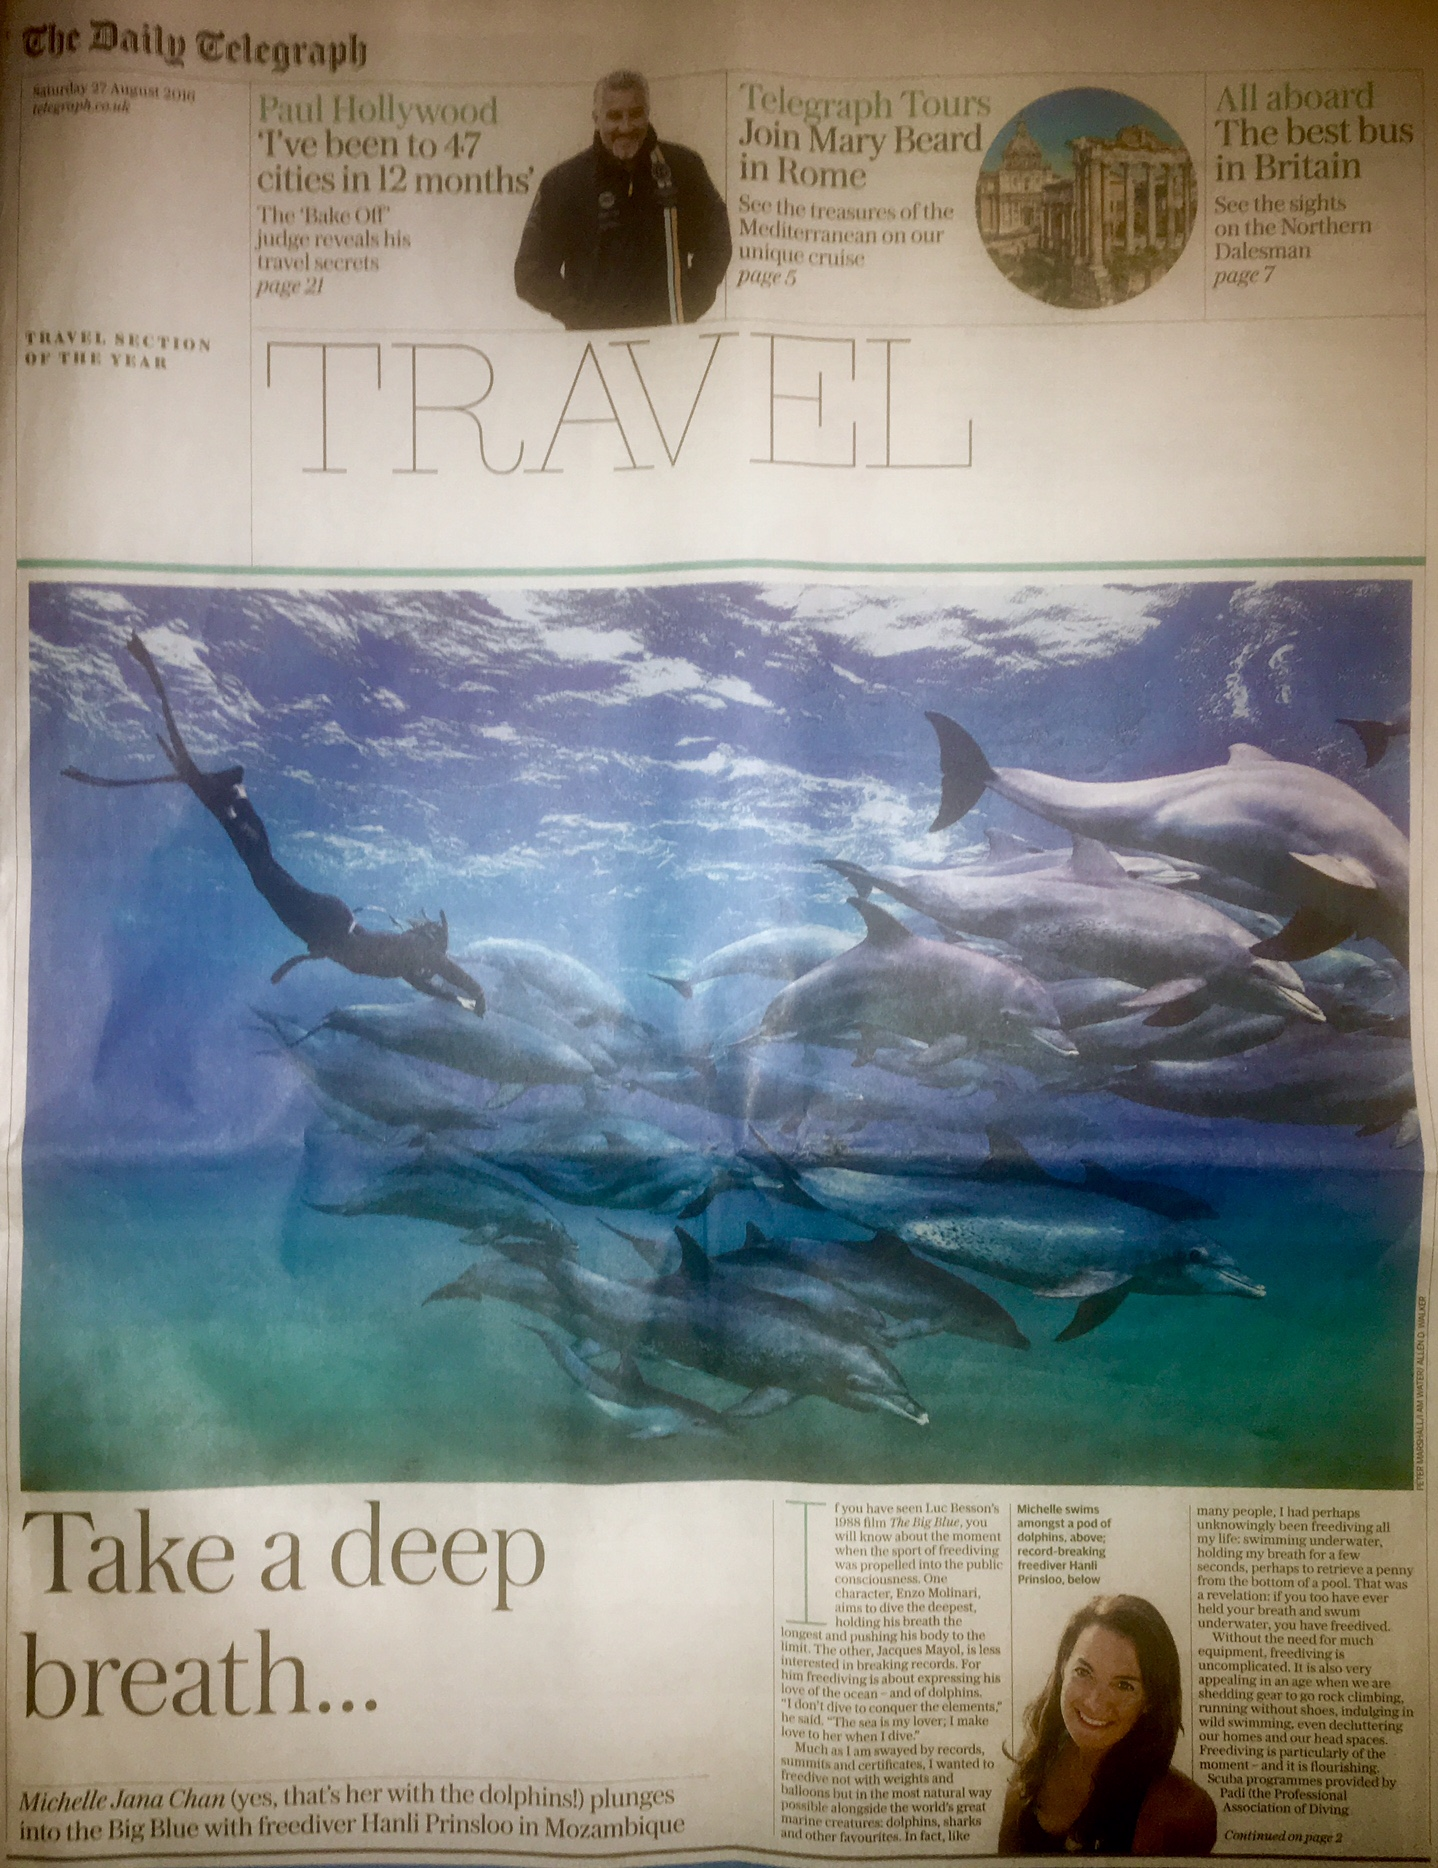 "The Telegraph UK  / My Big Blue Adventure                         by Michelle Jana Chan  August 26, 2016  ""In your own time, when you are ready,"" Hanli said. I took a big gulp, inverted my body and headed down, down, down. At the surface the sea was choppy, but underwater, as I focused on the swaying rope, it felt supremely still and quiet. Perhaps this is what it feels like for dolphins as they leap into the roar of the air, then splash back down into the silence of the sea.                      Read the whole article here on the  The Telegraph UK ."